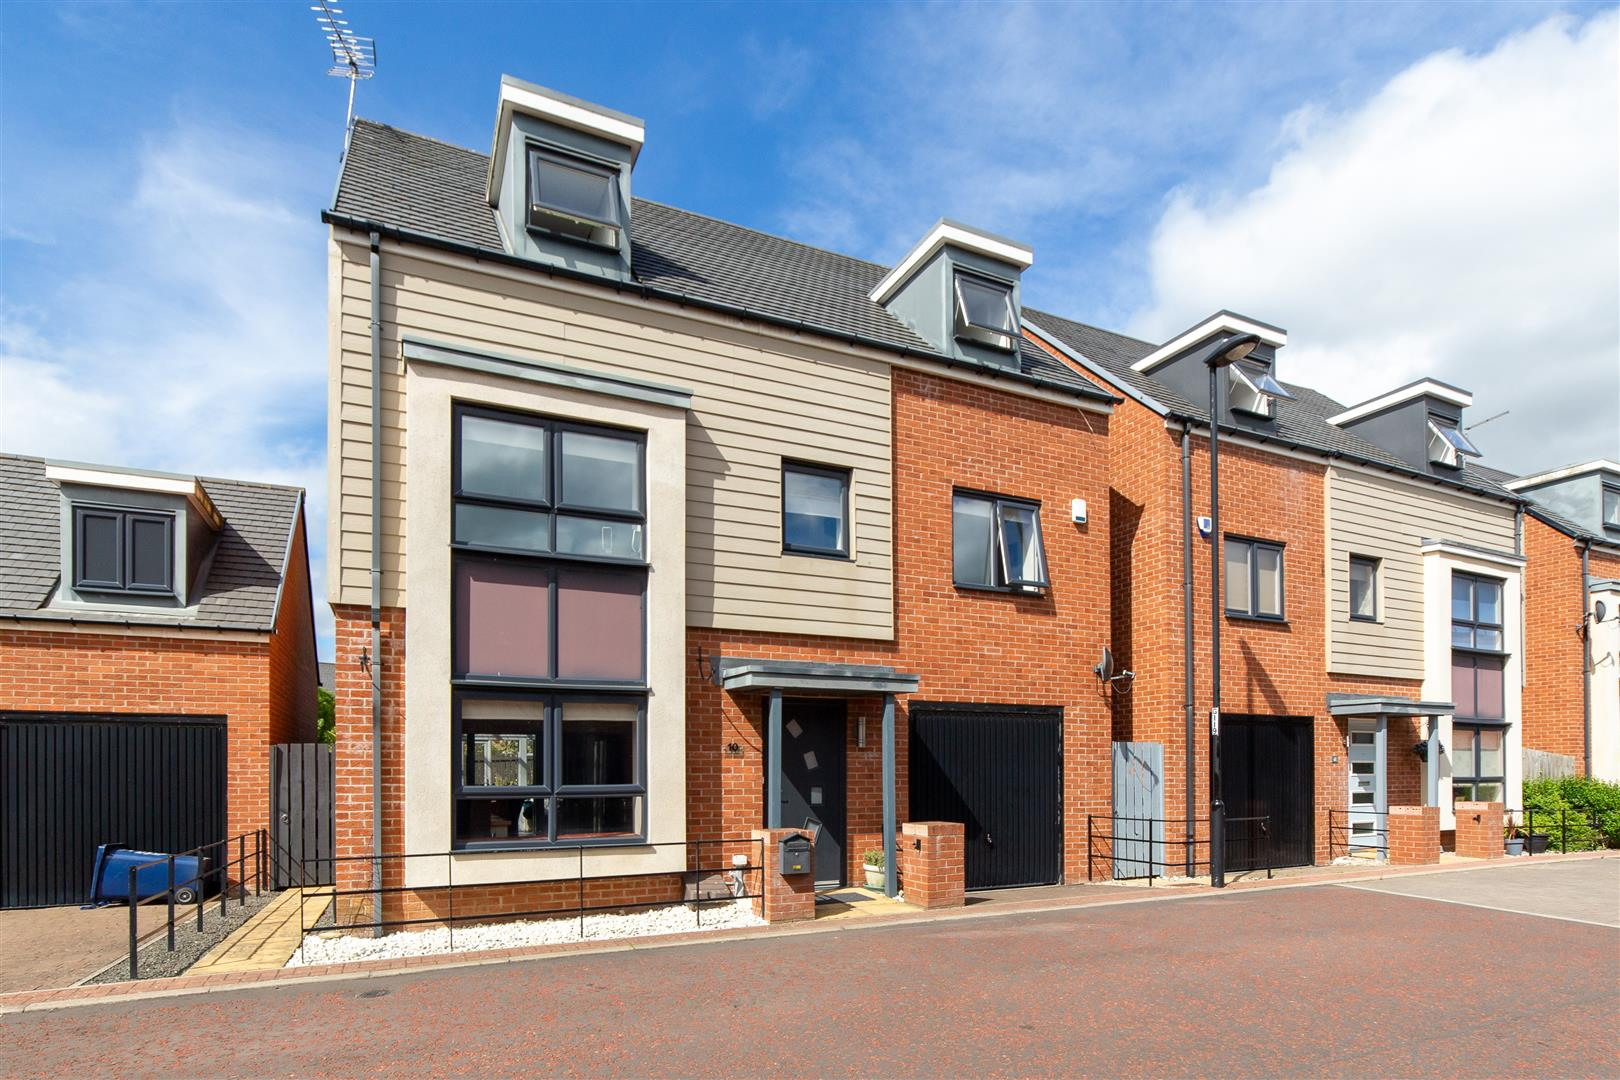 5 bed detached house for sale in Kimmerstone Road, Newcastle Upon Tyne  - Property Image 1